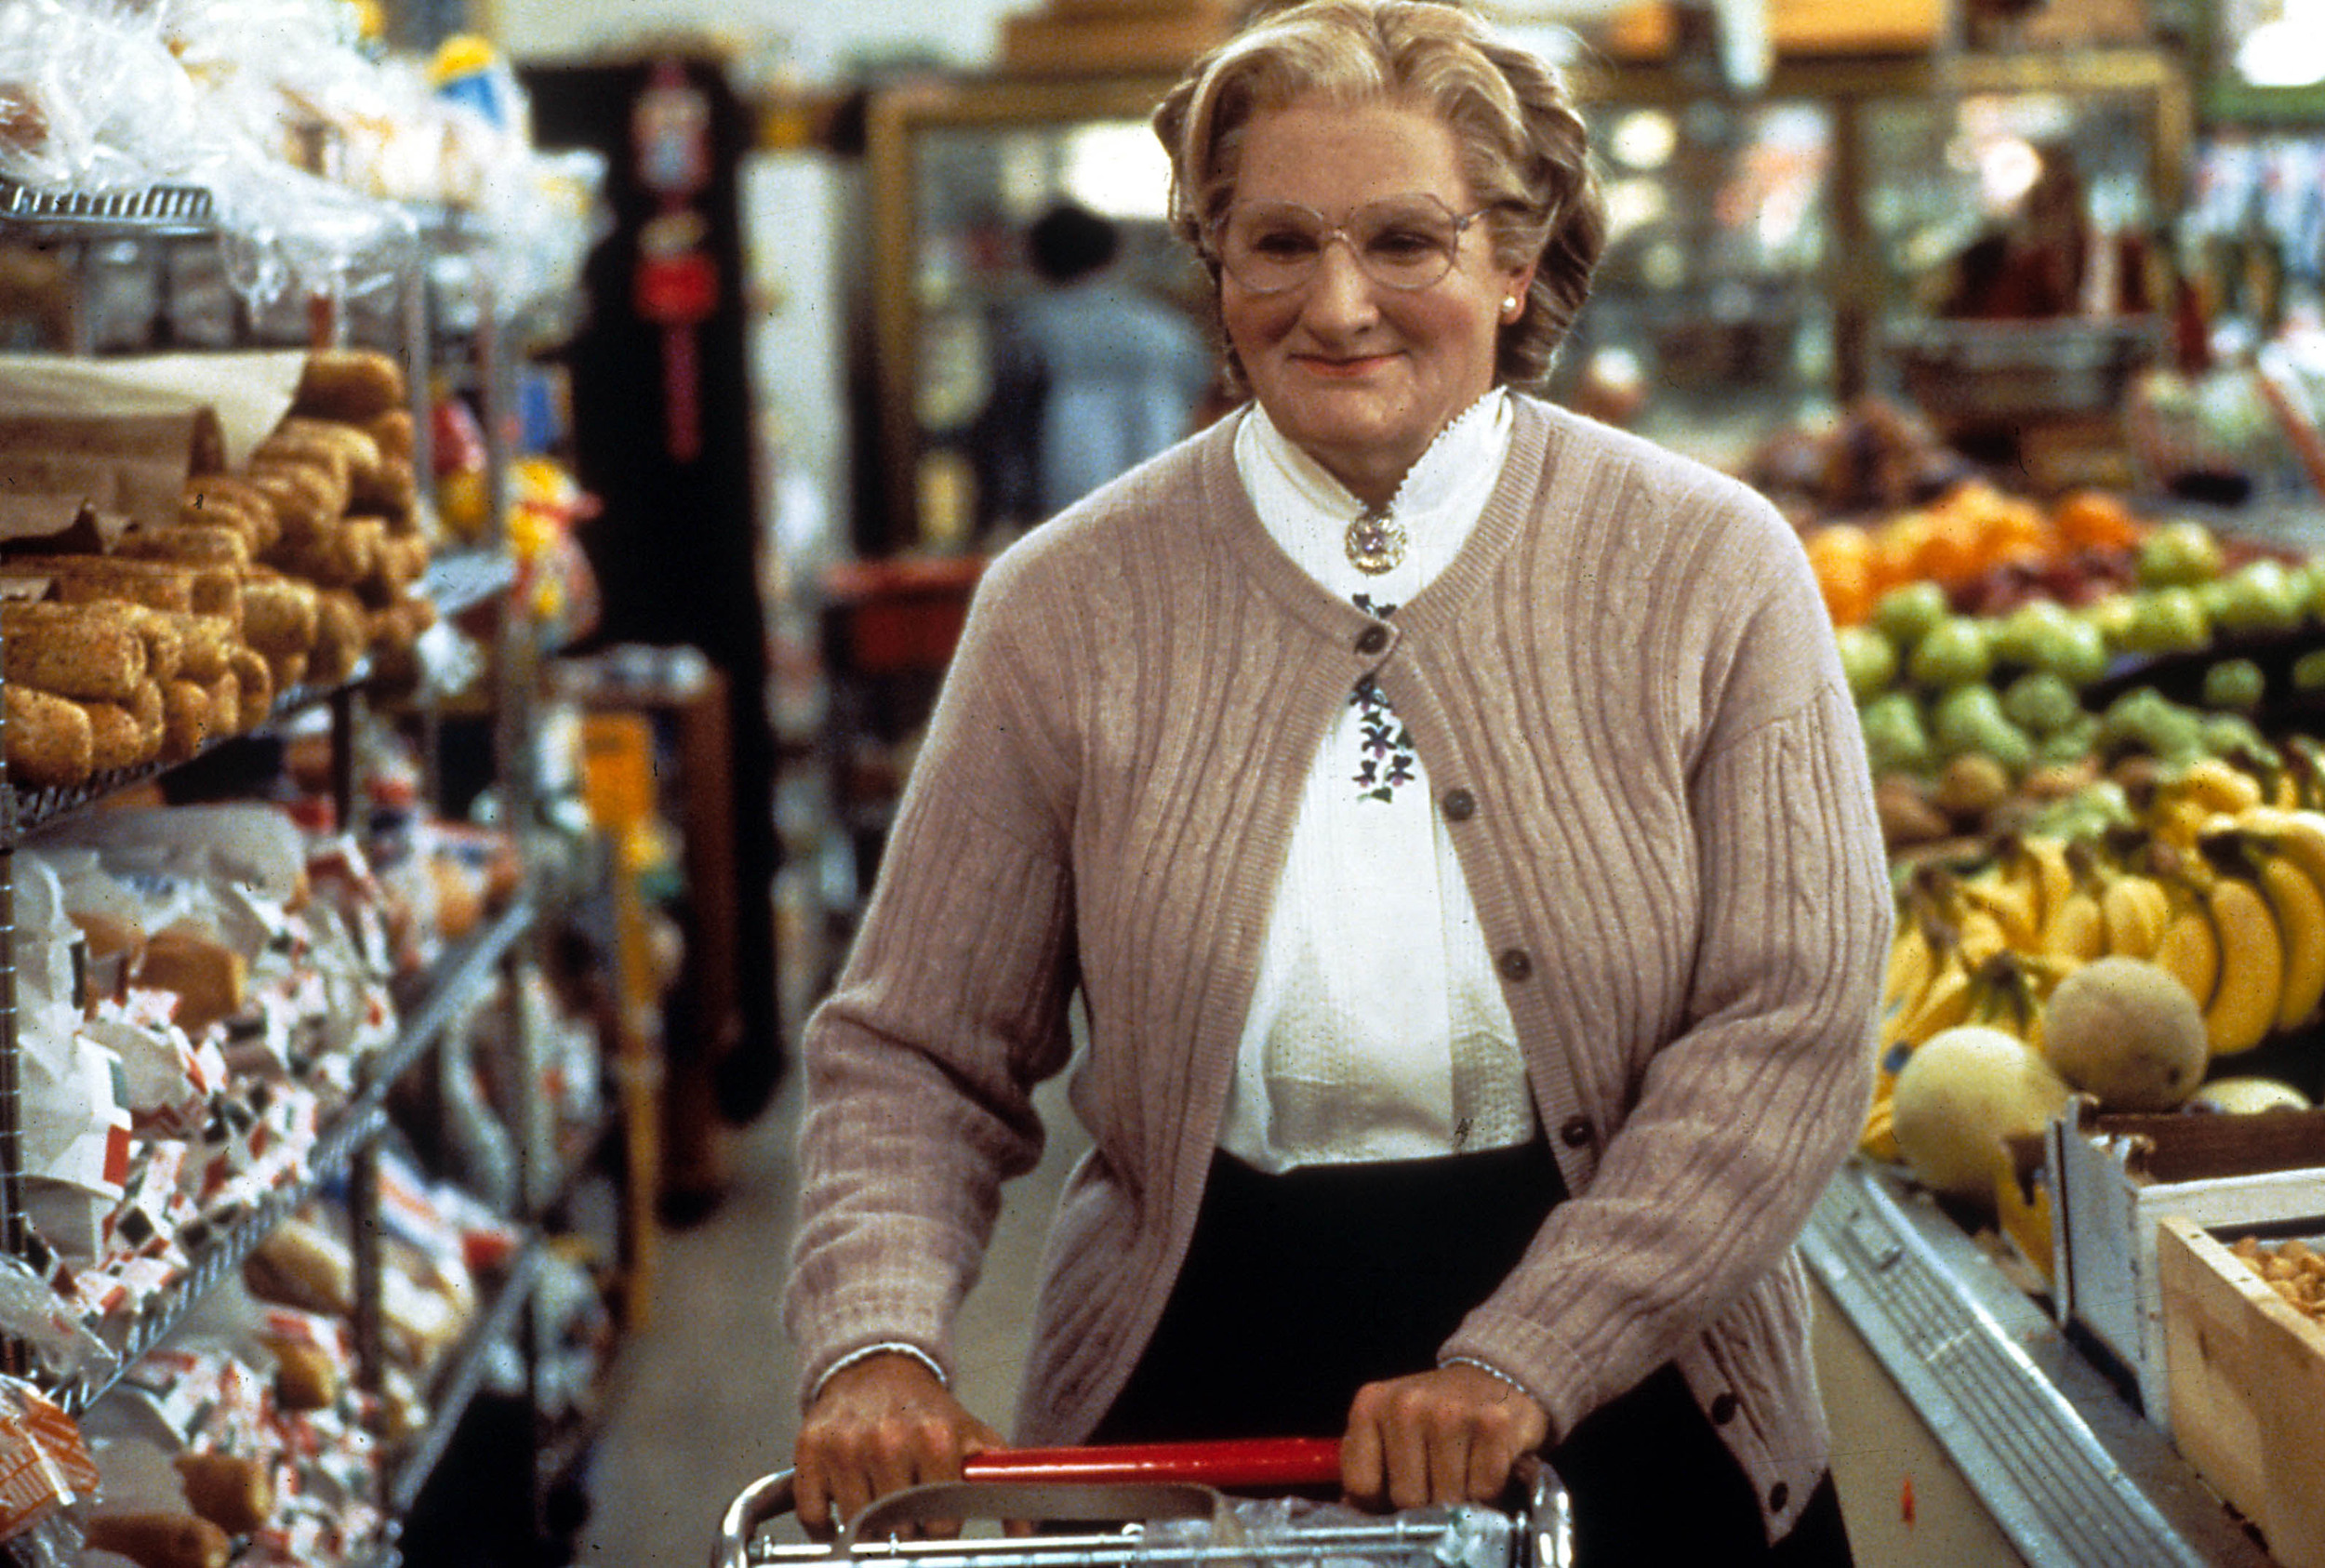 Mrs Doubtfire Musical In The Works Film News Conversations About Her